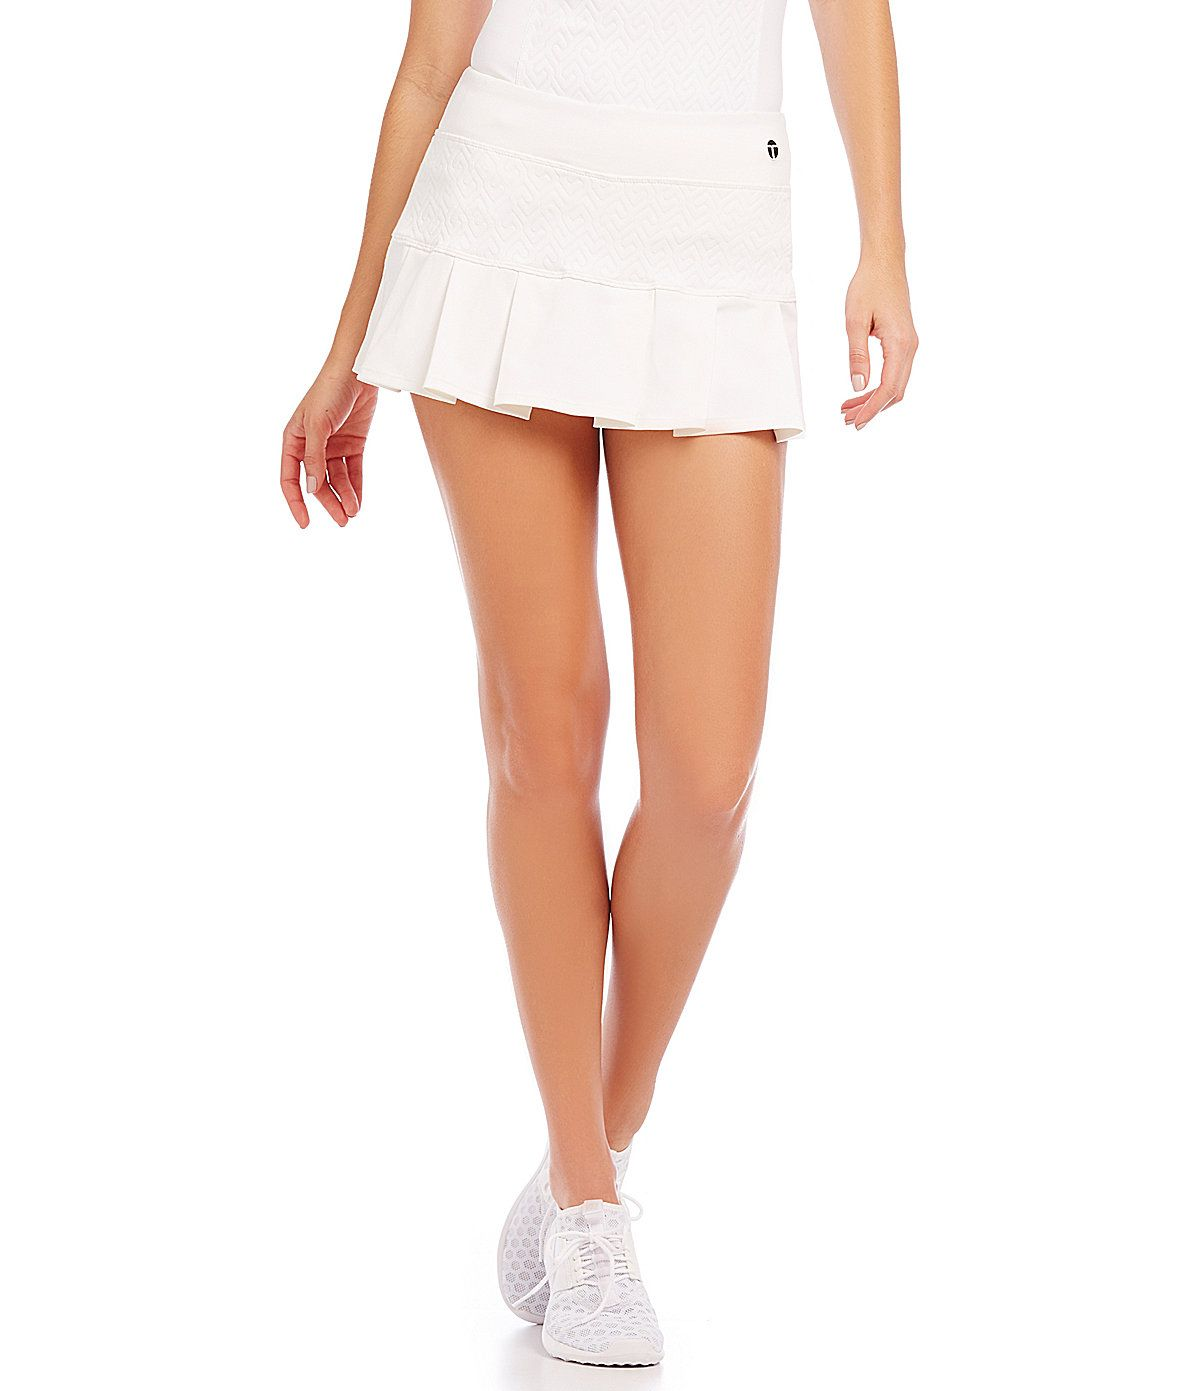 7b35bfd006a Trina Turk Recreation Racquet Club Jacquard Tennis Skirt